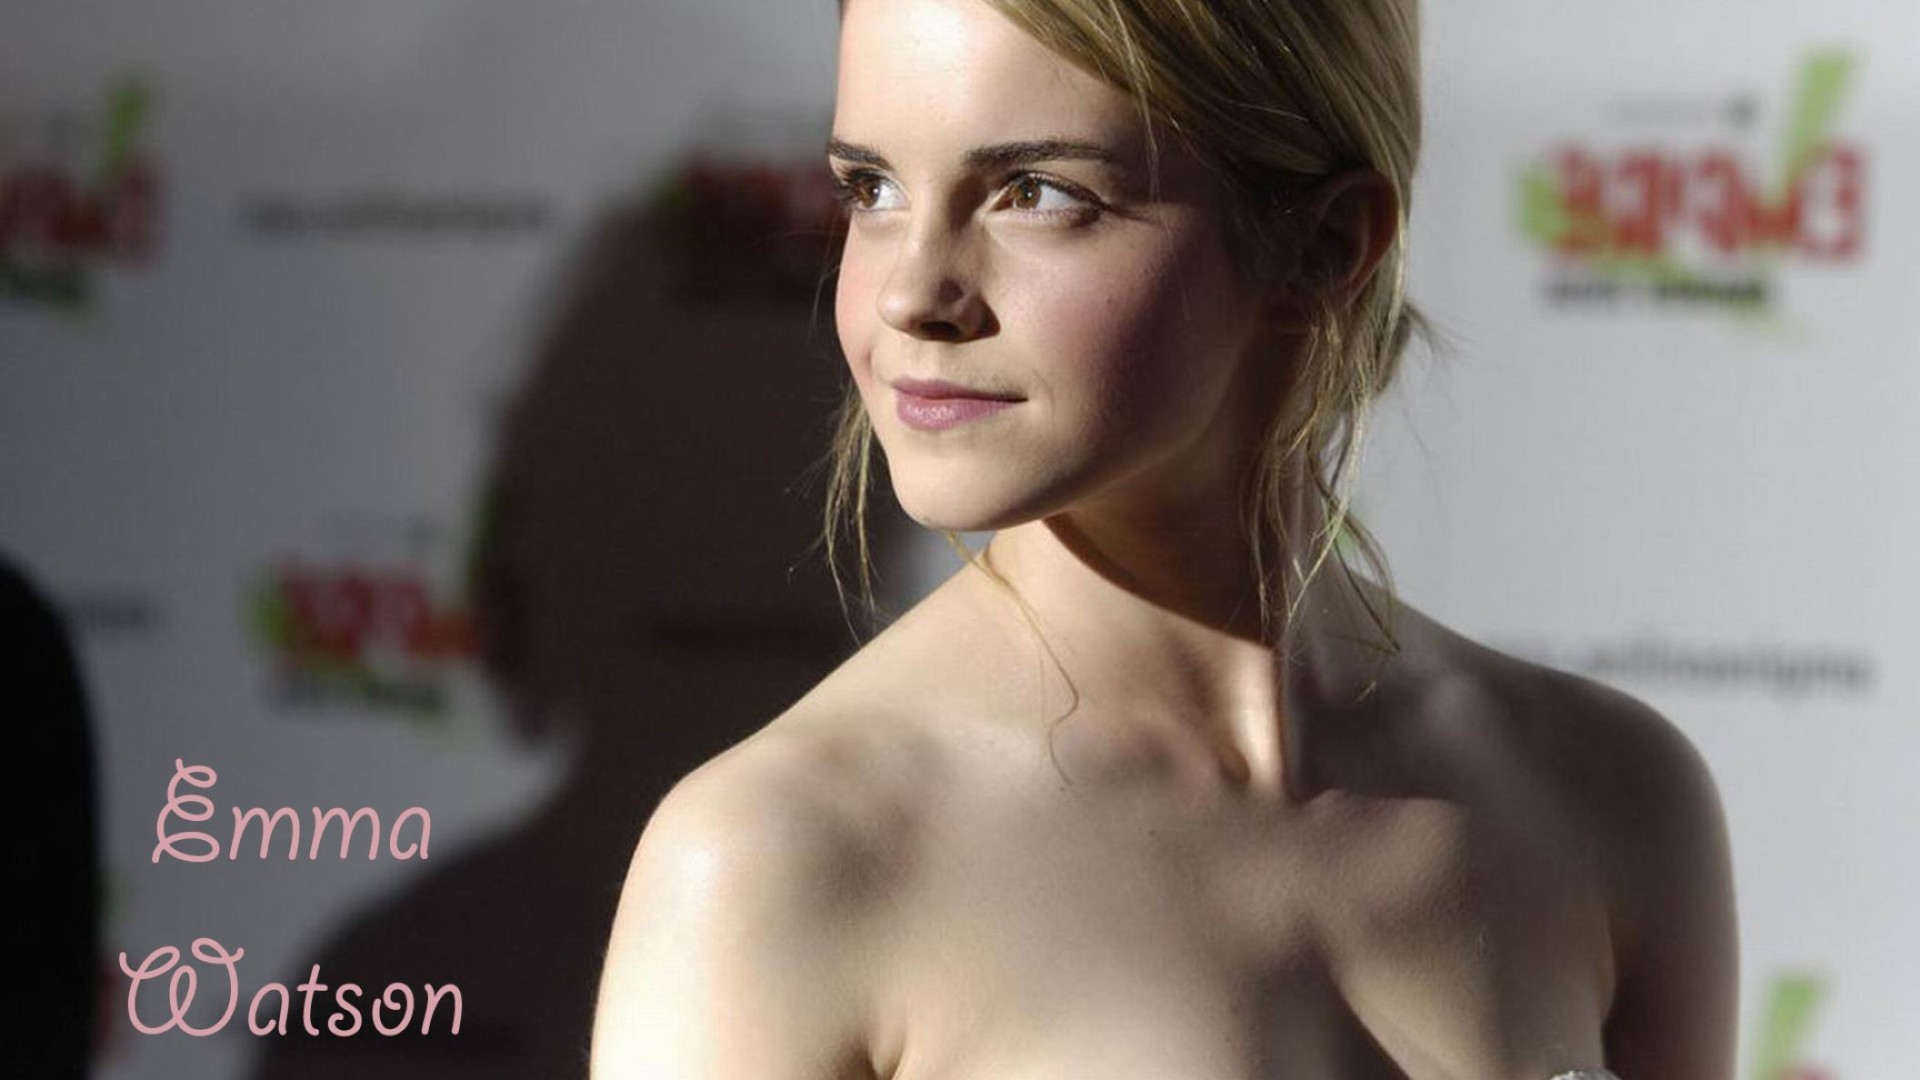 emma watson hd wide 2 wide wallpaper: desktop hd wallpaper